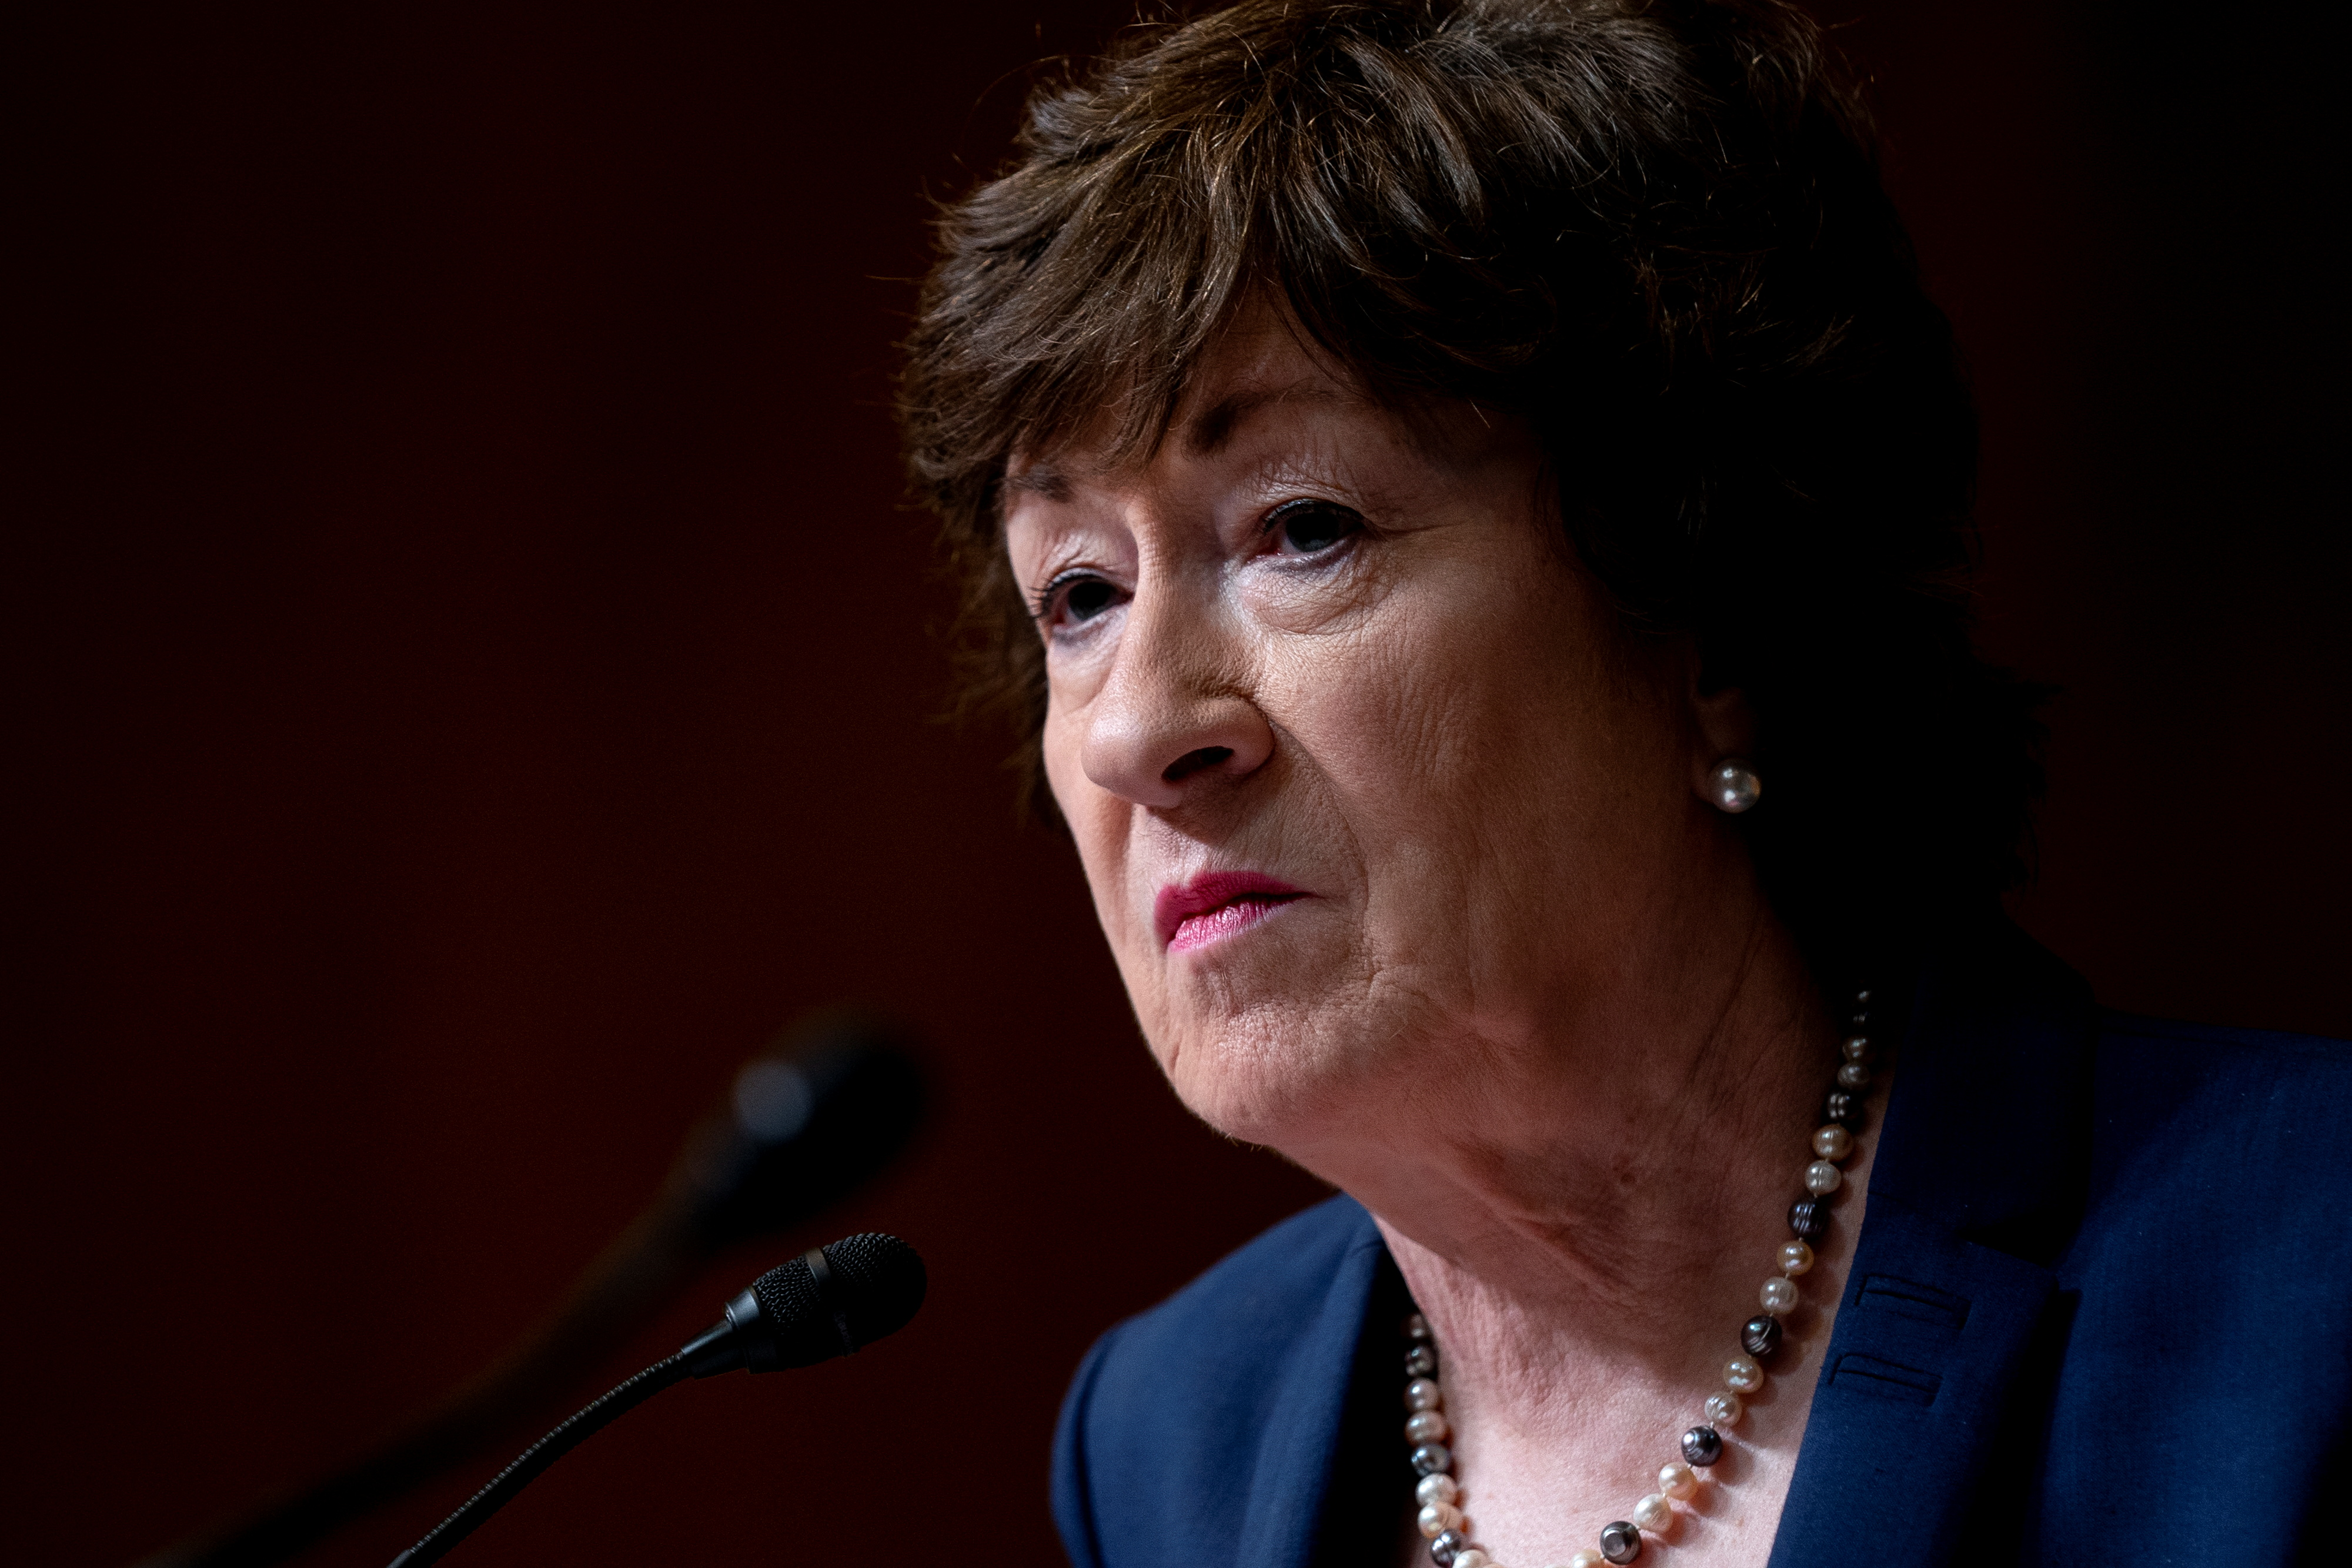 Senator Susan Collins (R-ME) speaks during a Senate Appropriations Subcommittee on Commerce, Justice, Science, and Related Agencies hearing at the Dirksen Senate Office building in Washington, D.C., U.S., June 9, 2021. Stefani Reynolds/Pool via REUTERS